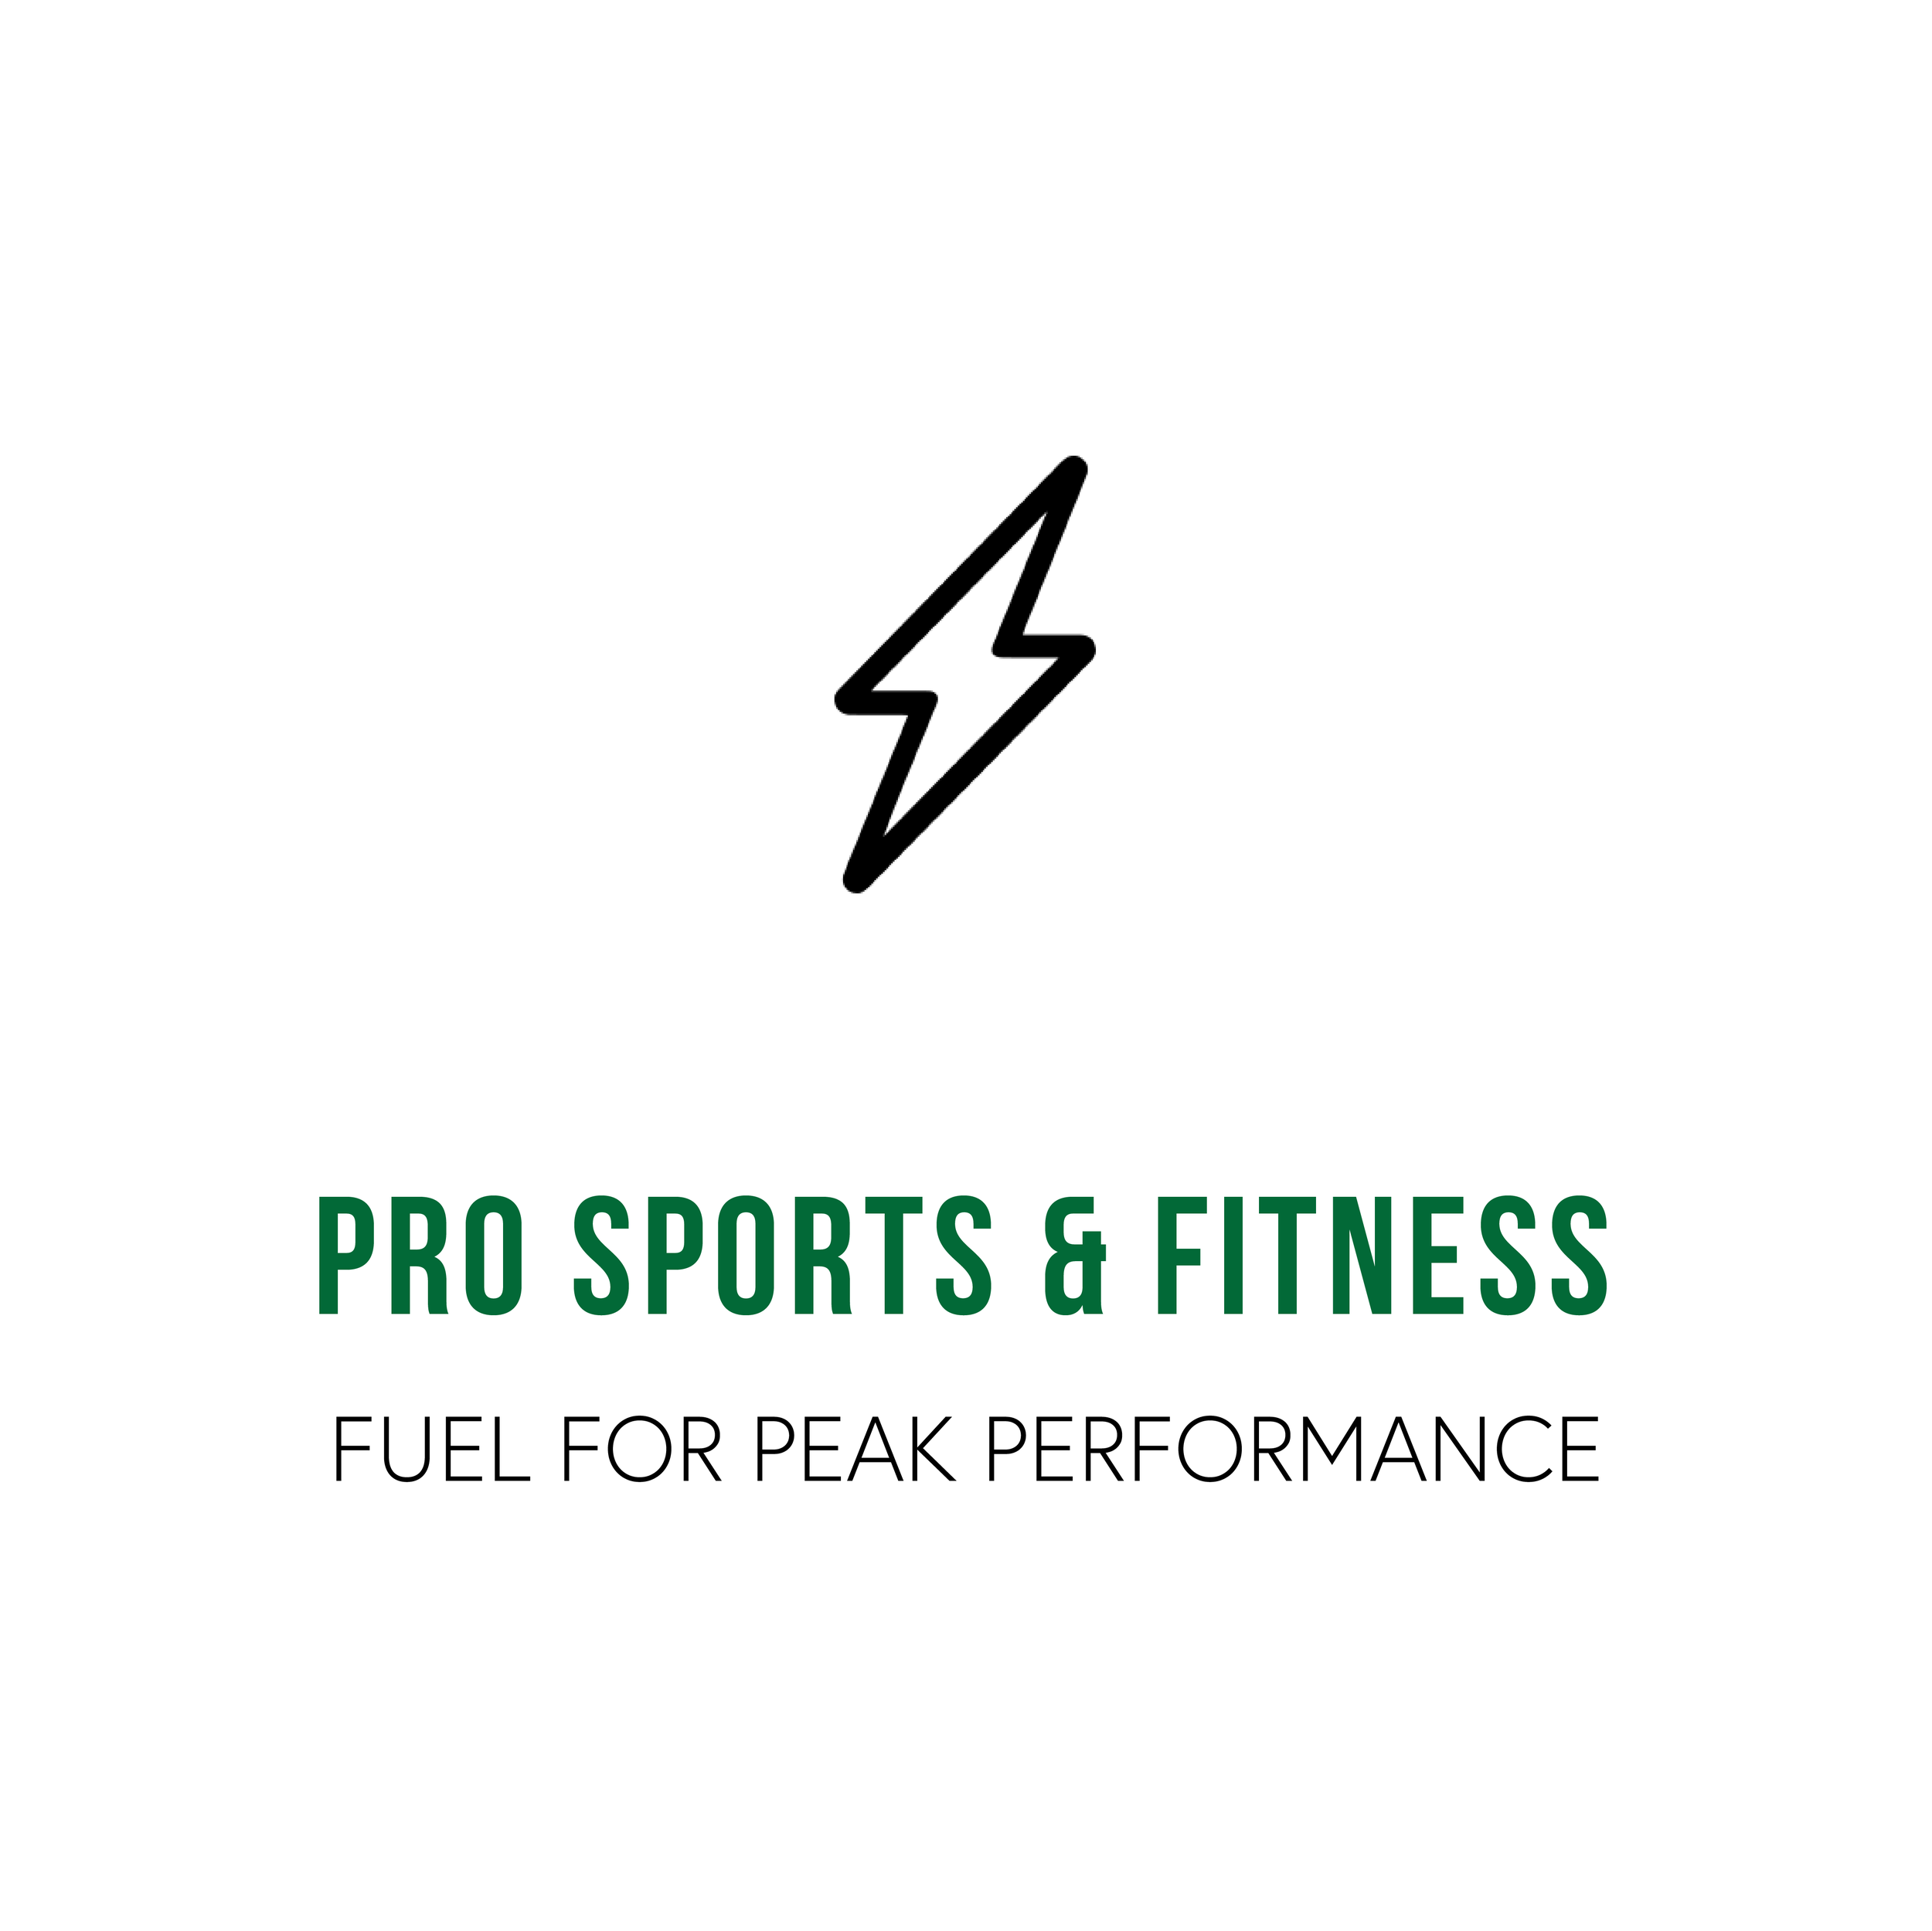 Pro Sports and Fitness-02.png